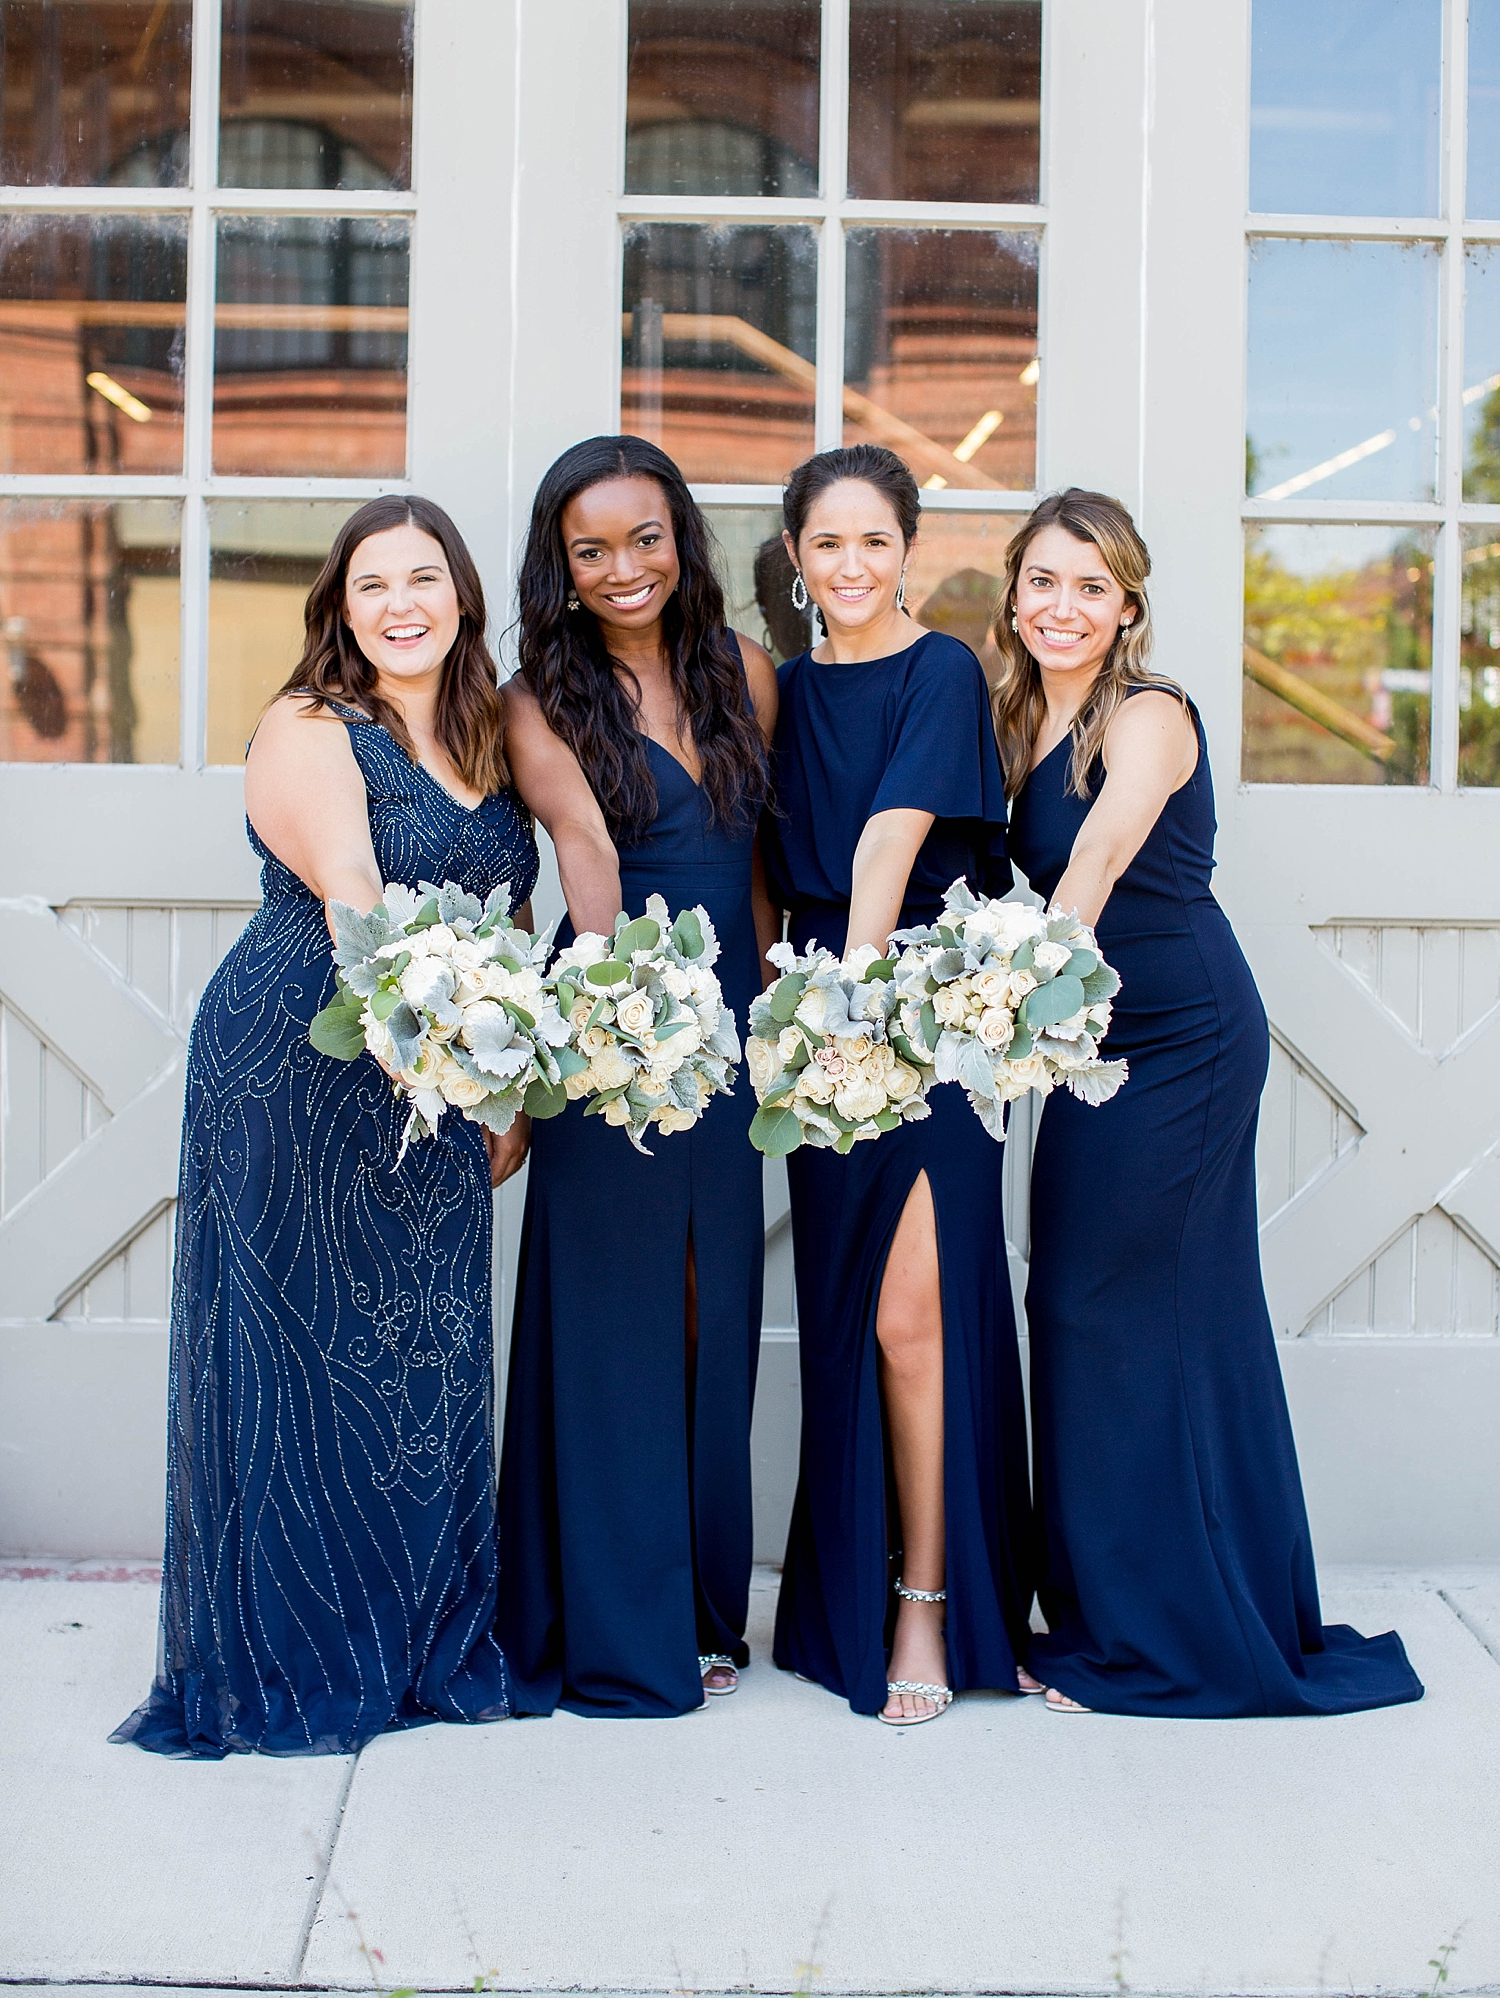 BHLDN Bridesmaids Dresses Campaign Philadelphia New Jersey Wedding Fashion Photography by Kelee Bovelle_0023.jpg